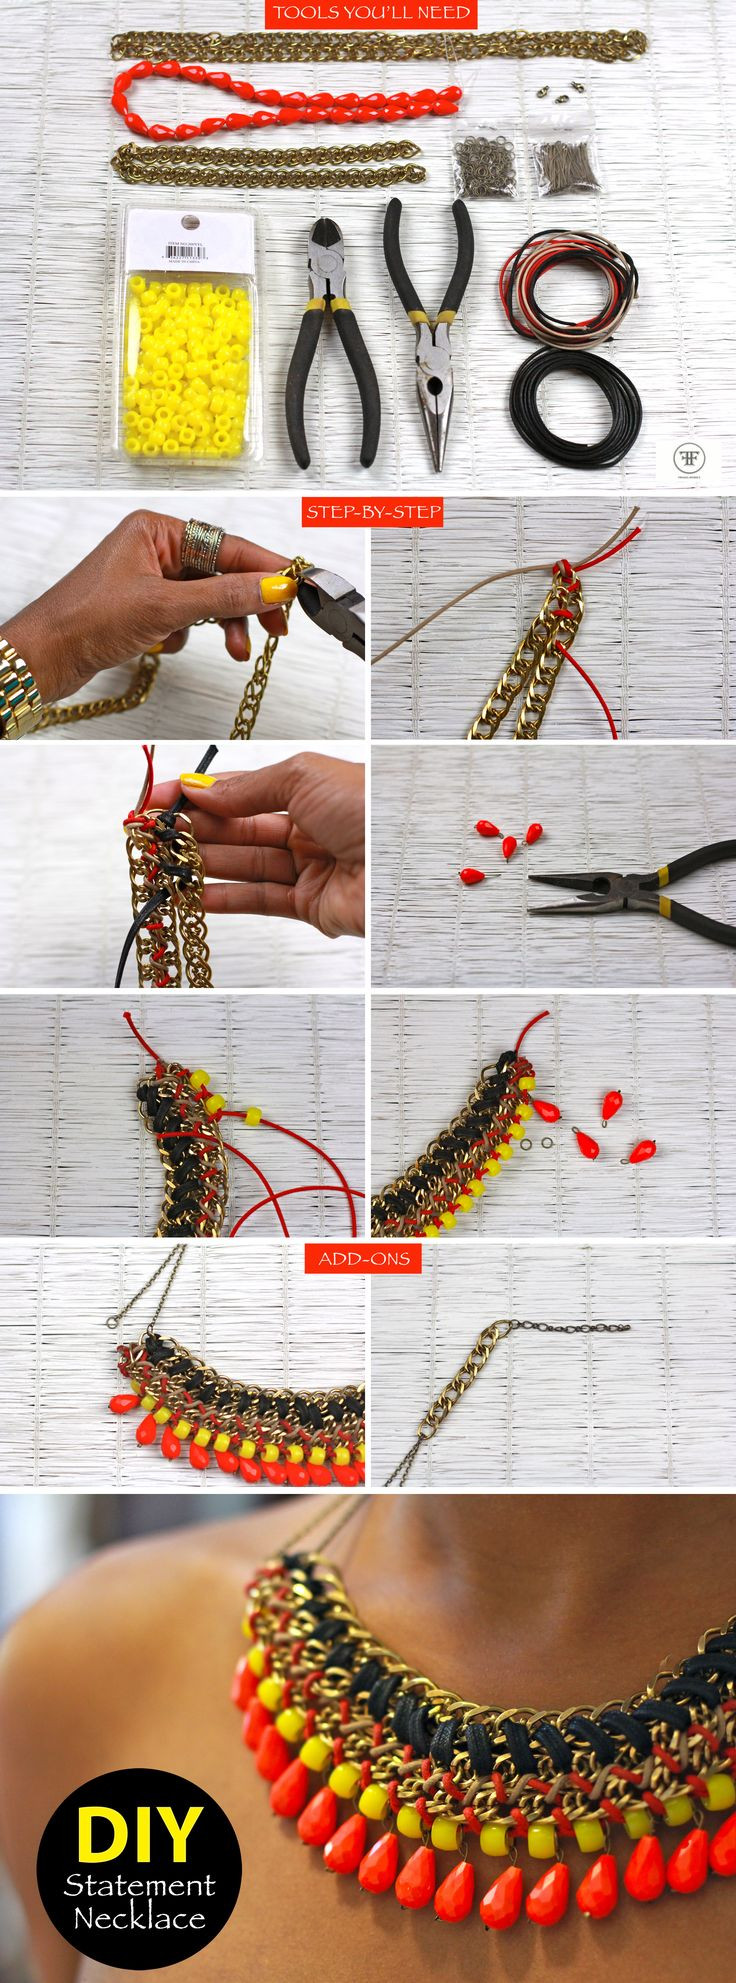 #DIYnecklace #diyjewelry http://sadtohappyproject.com/diy-statement-necklace-jewelry-tutorial-ideas/